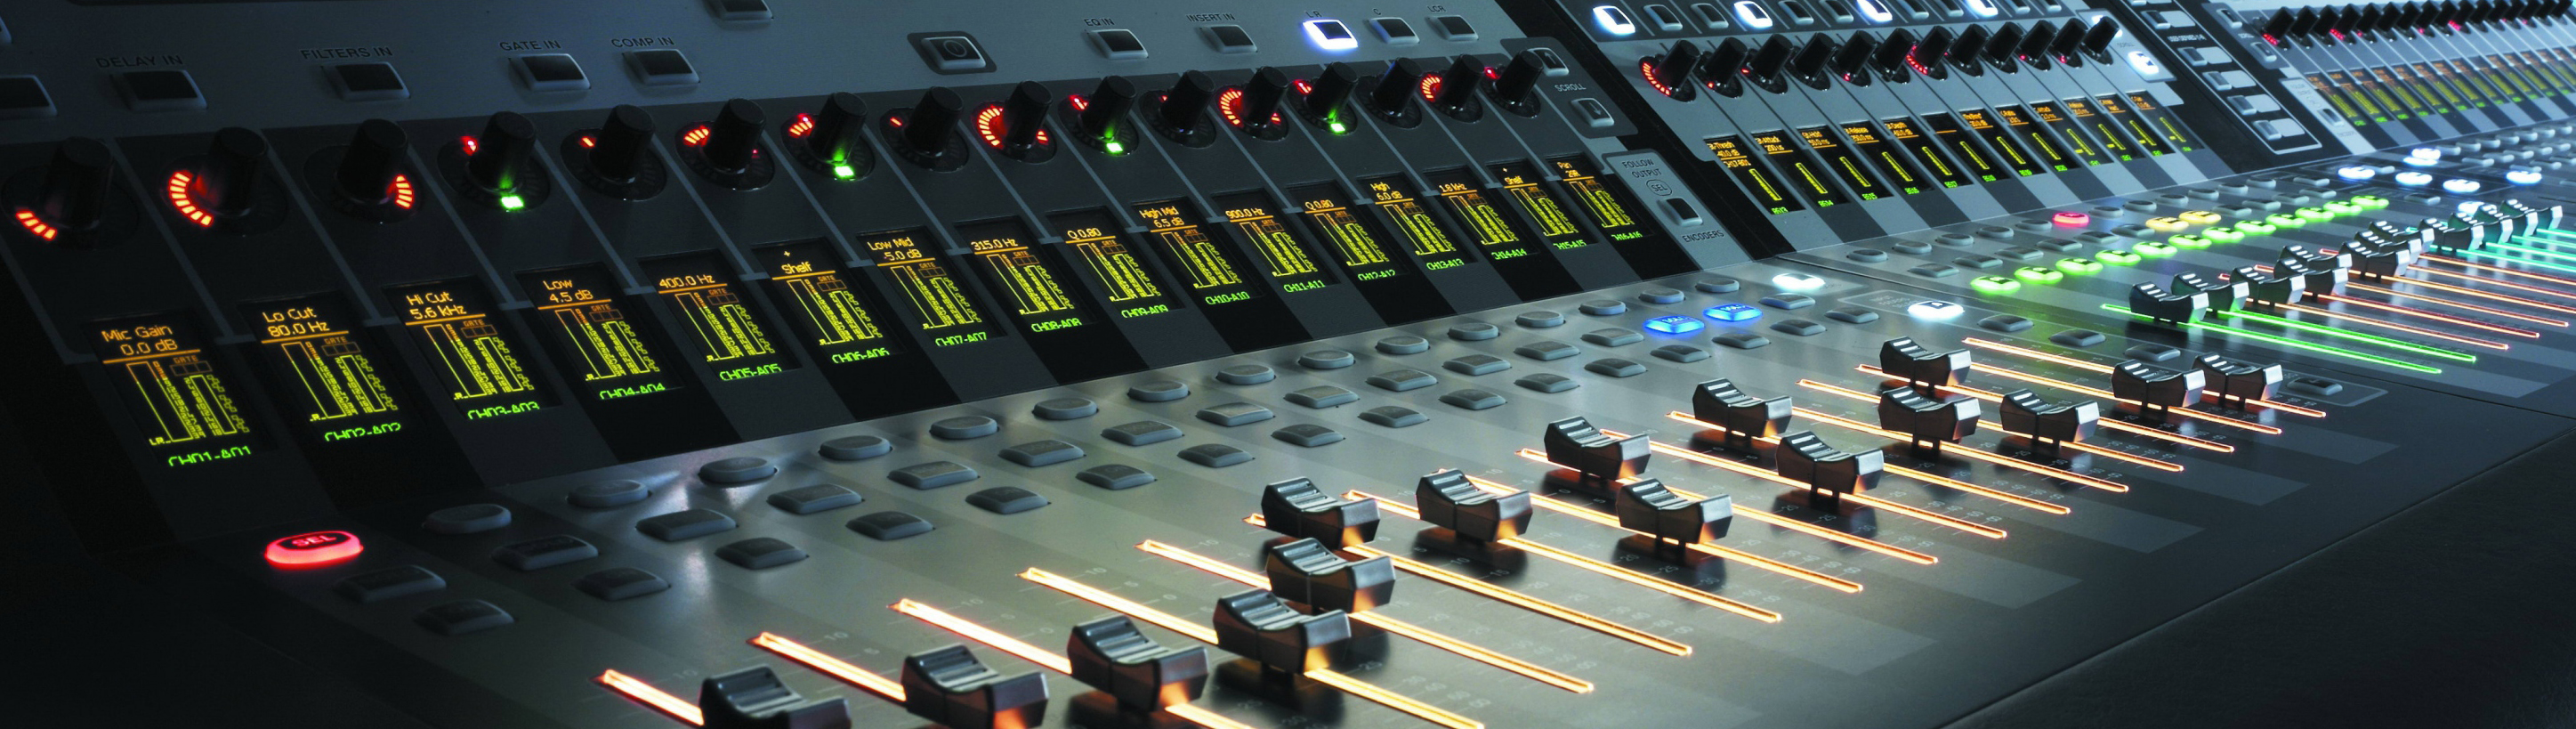 control_mixer_audio_equalizer_music_80033_3840x1200